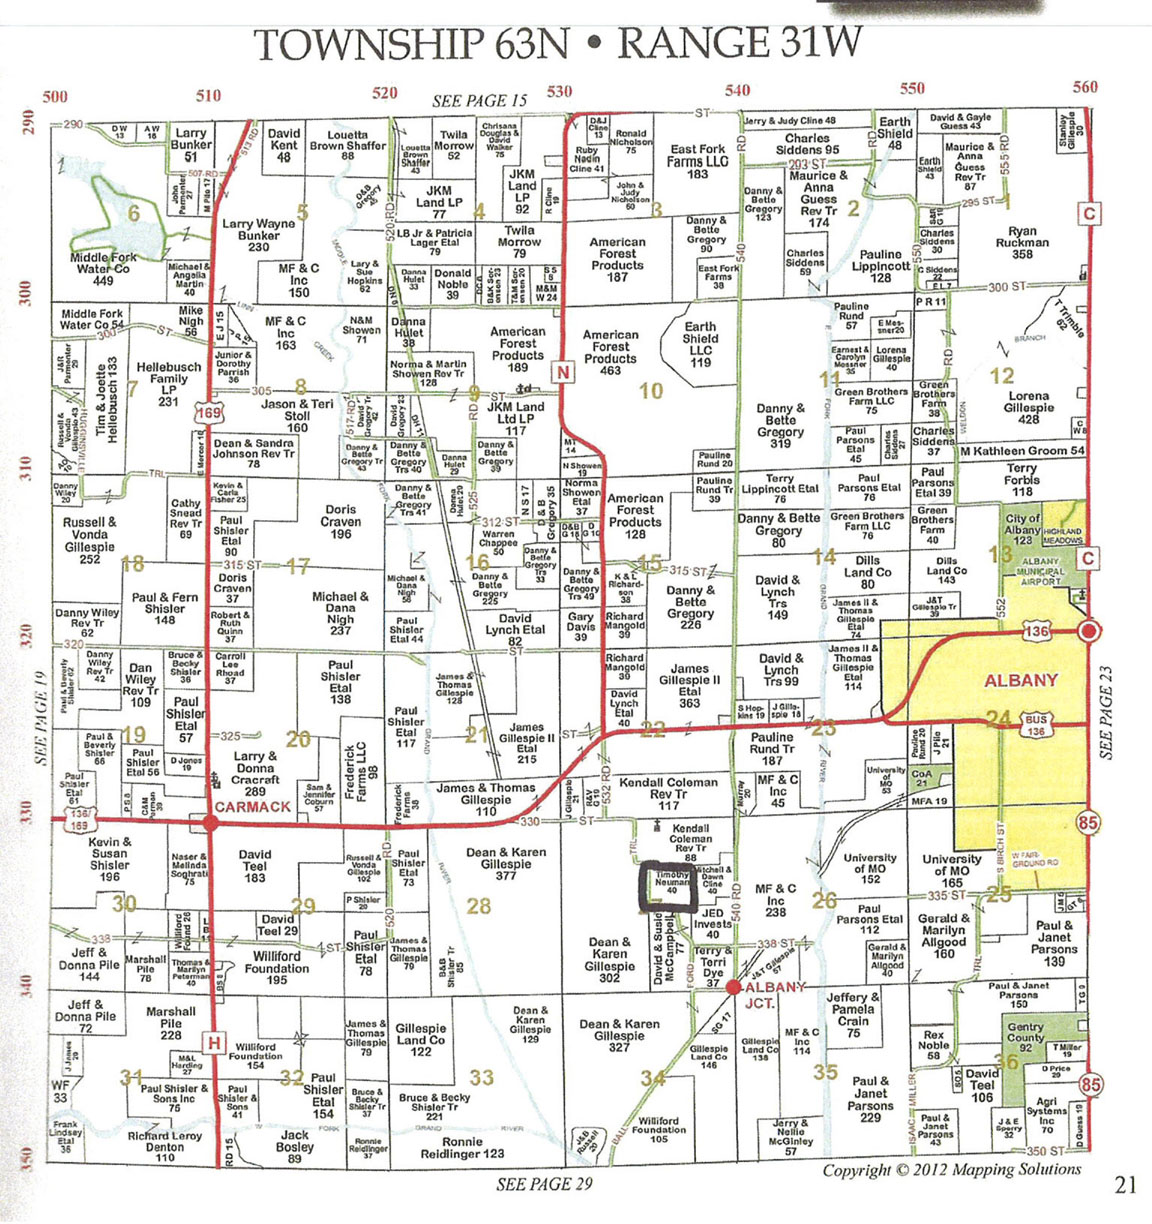 dekalb county highway map, united states plat maps, dekalb county mining, dekalb county zoning map, dekalb county property maps, dekalb county photographs, dekalb county birth certificates, dekalb county demographics, on dekalb county plat map